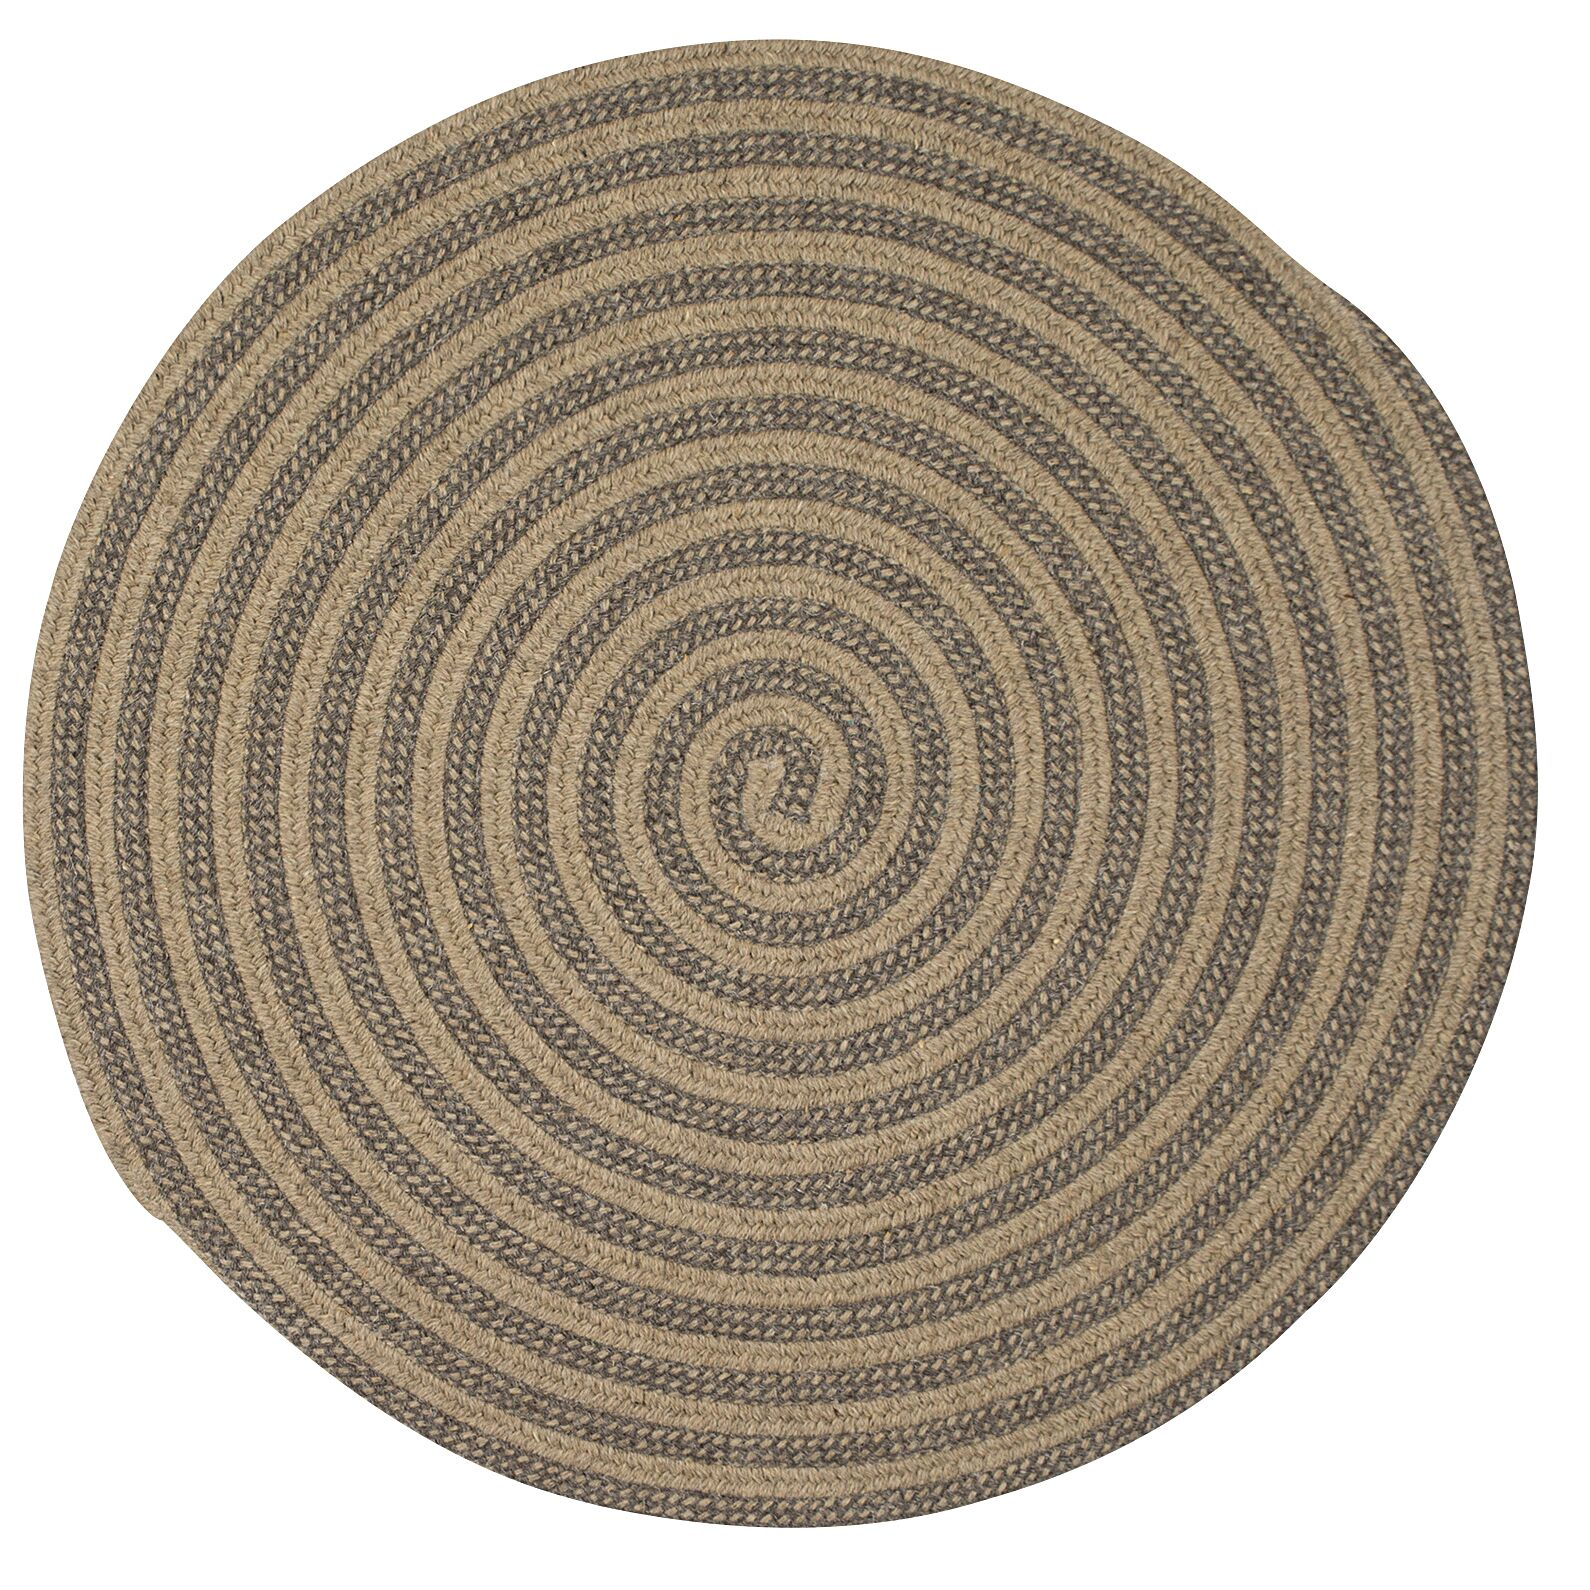 Cadenville Hand-Woven Area Rug Rug Size: Round 8'